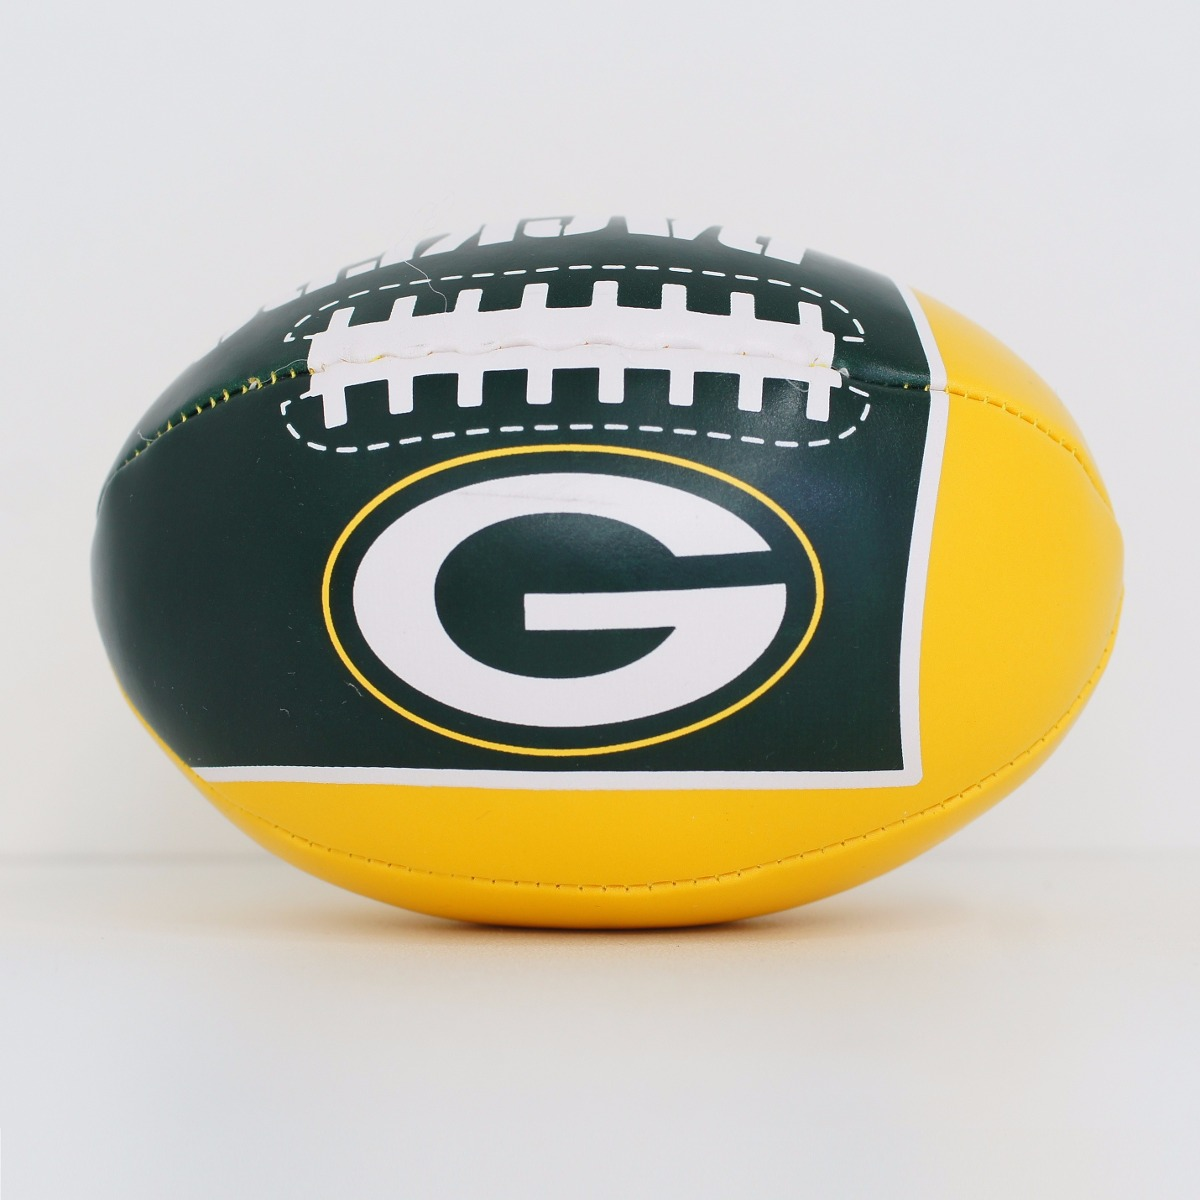 Mini Bola Futebol Americano - Nfl - Green Bay Packers - R  49 9a4a7dc9fe91b